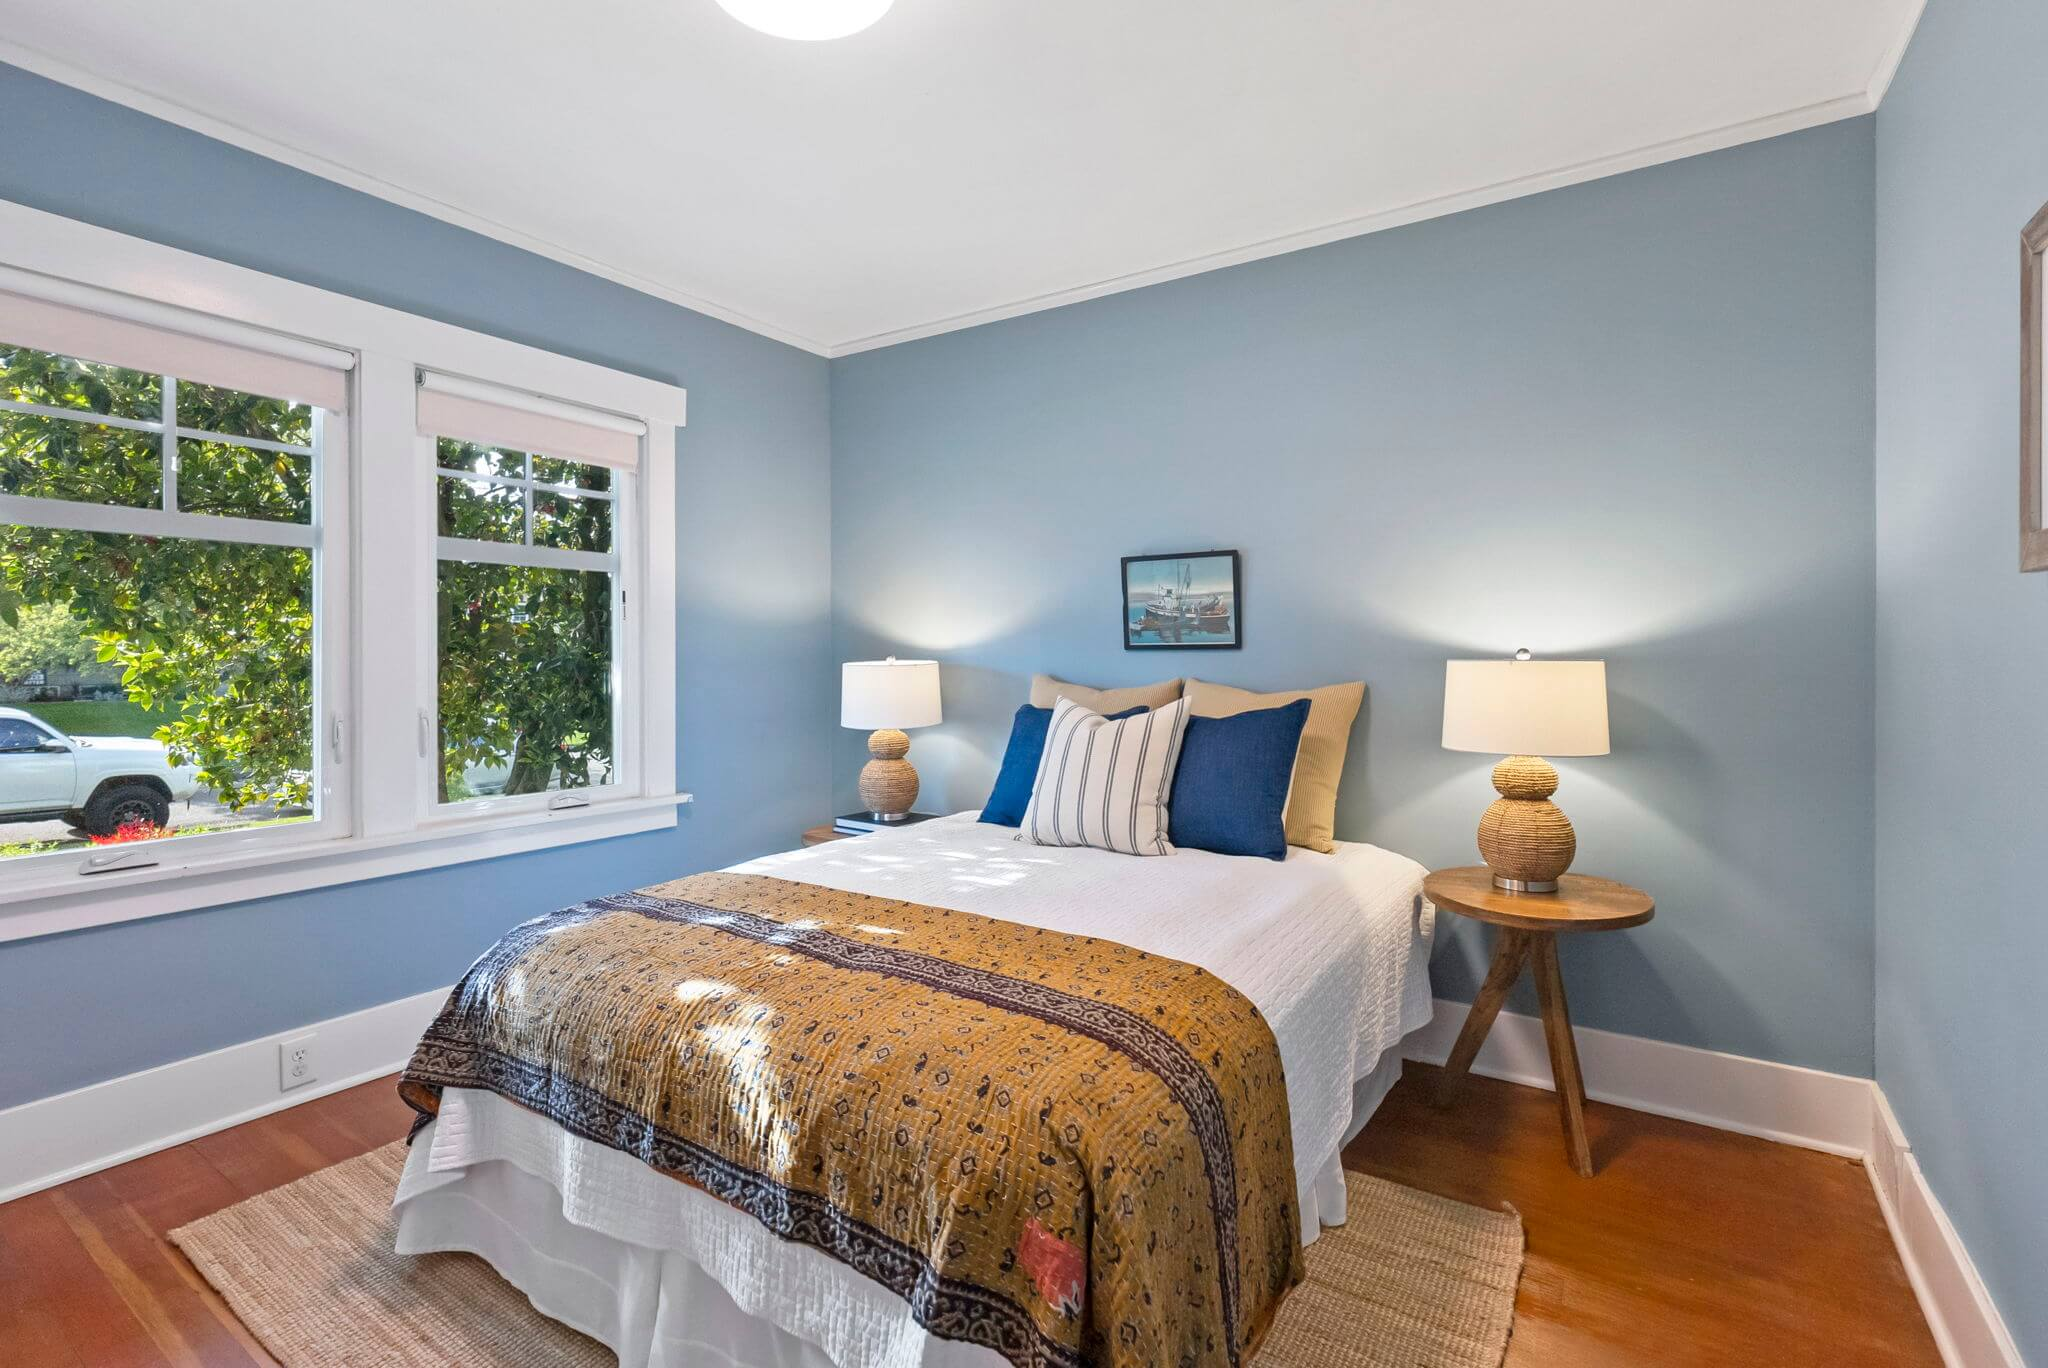 Second bedroom with fir floors